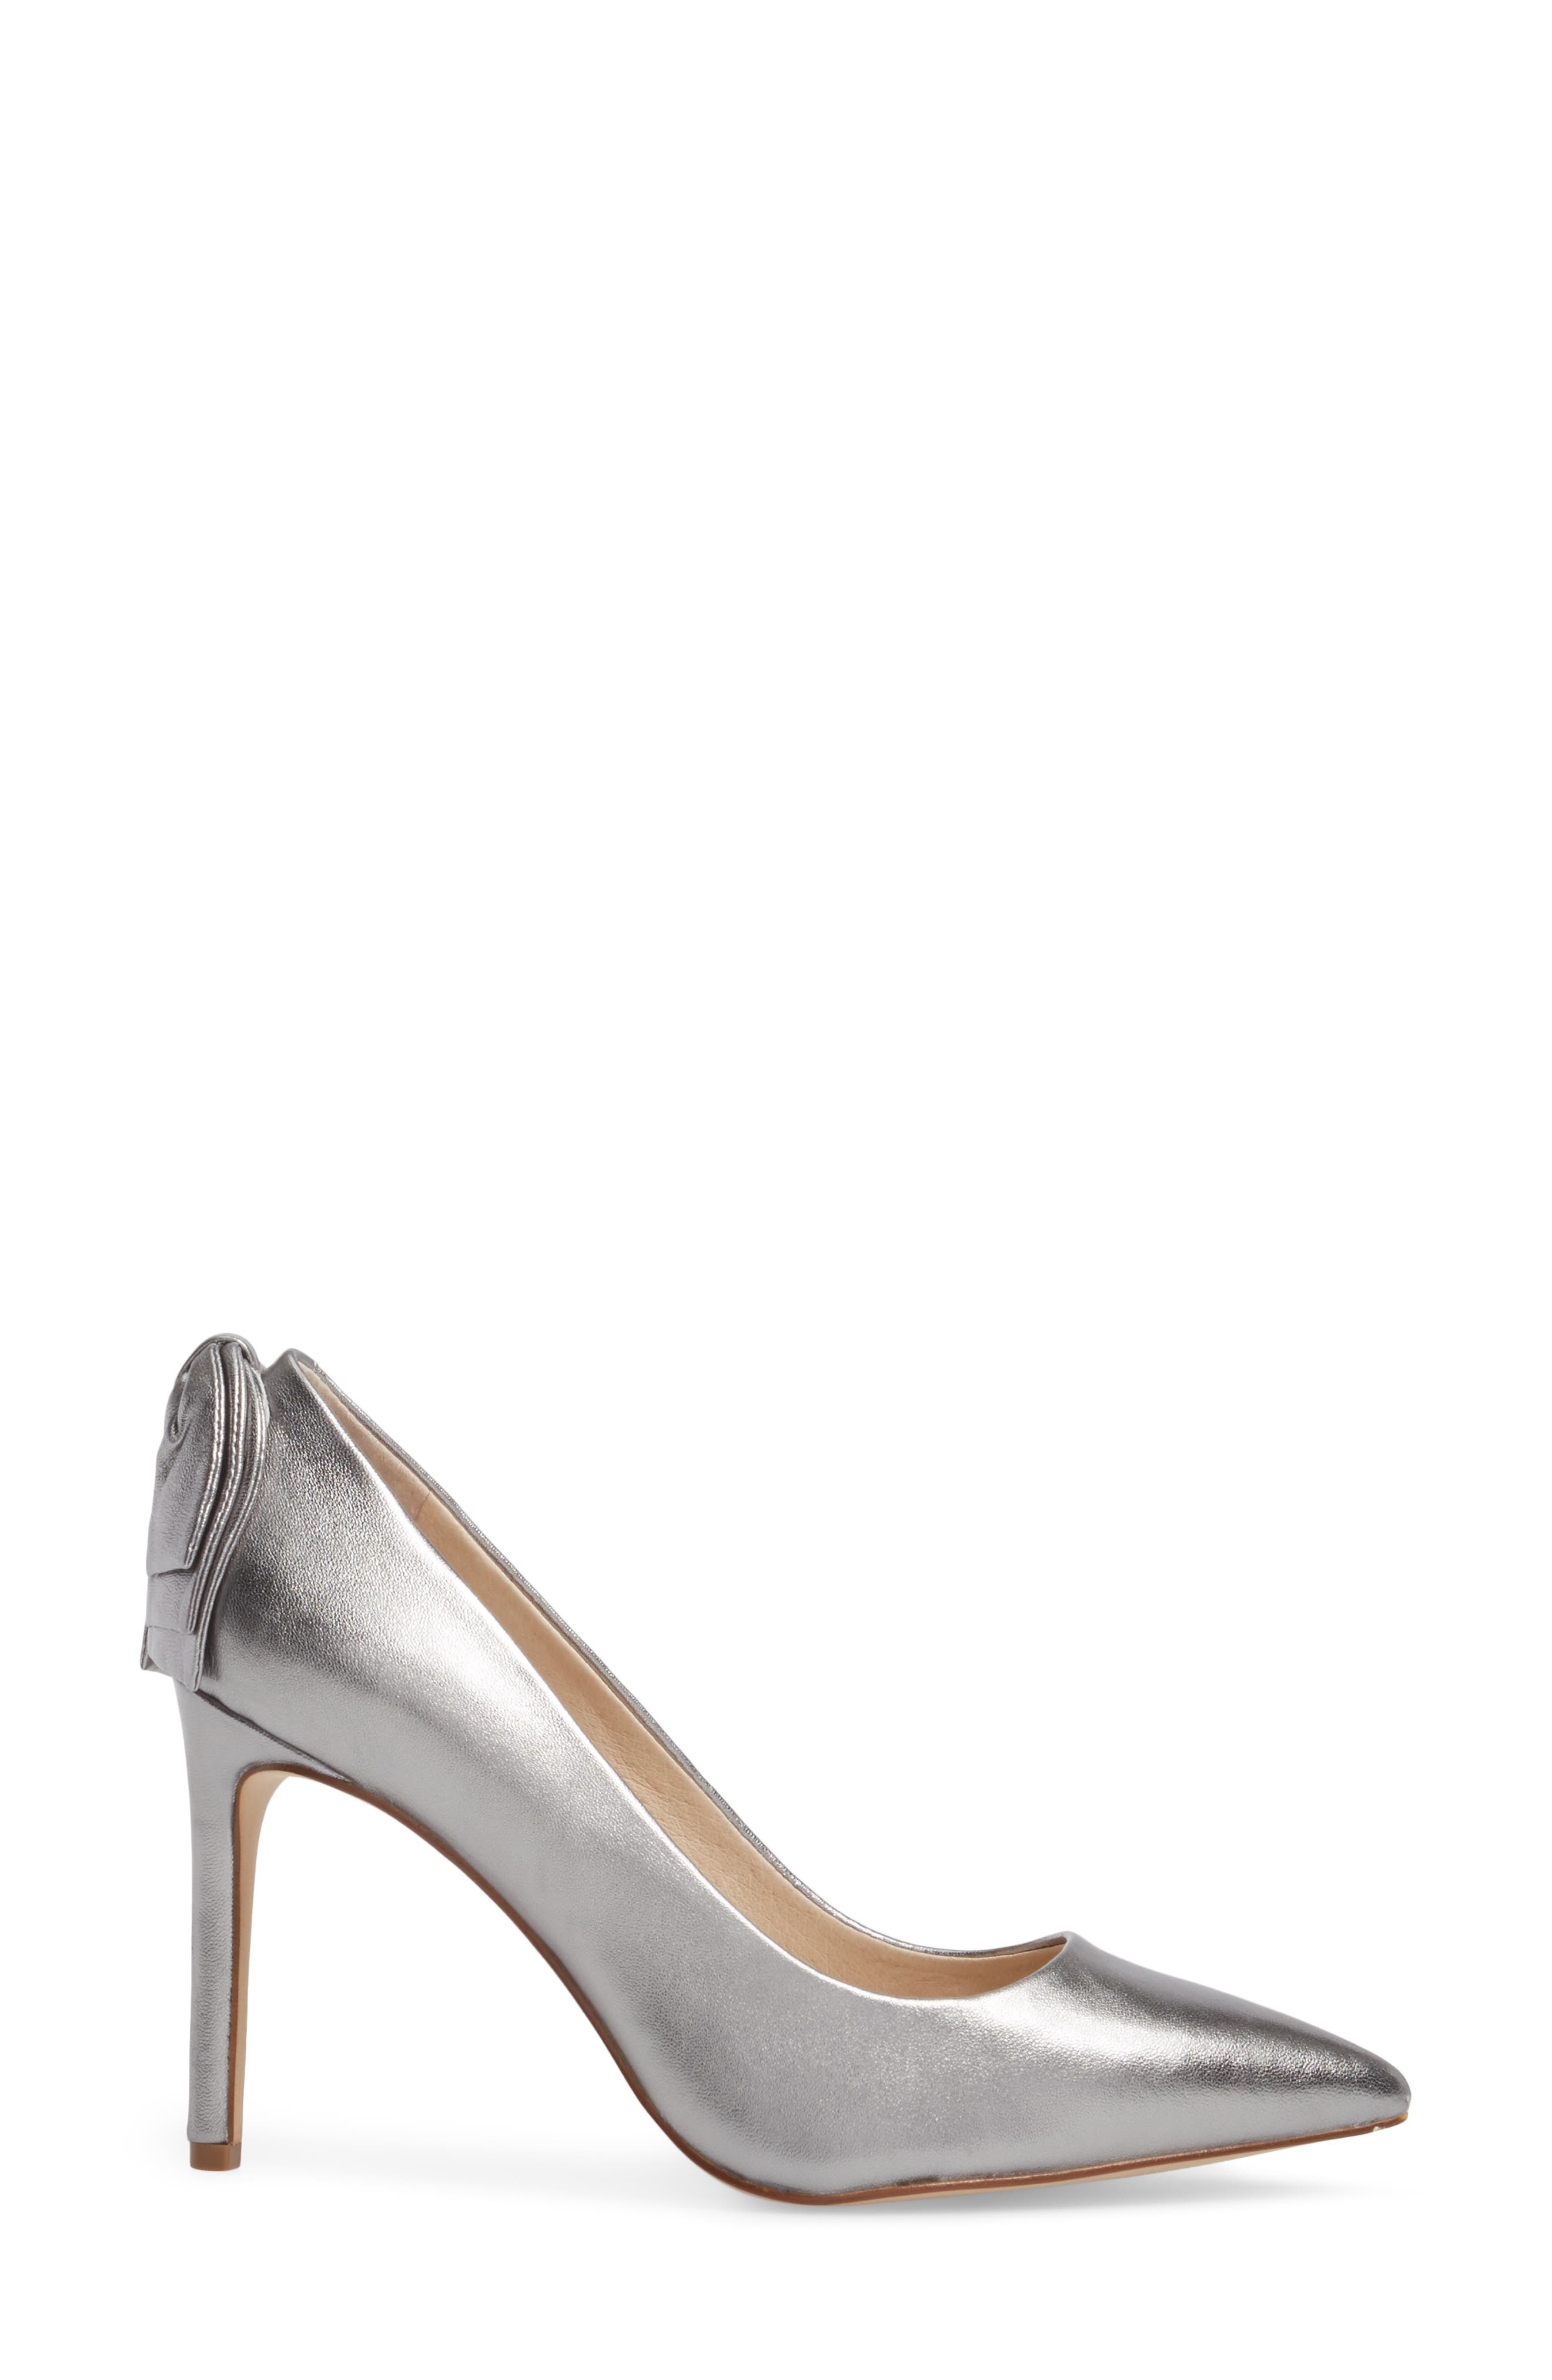 Josely Pointy Toe Pump,                             Alternate thumbnail 3, color,                             Chrome Leather